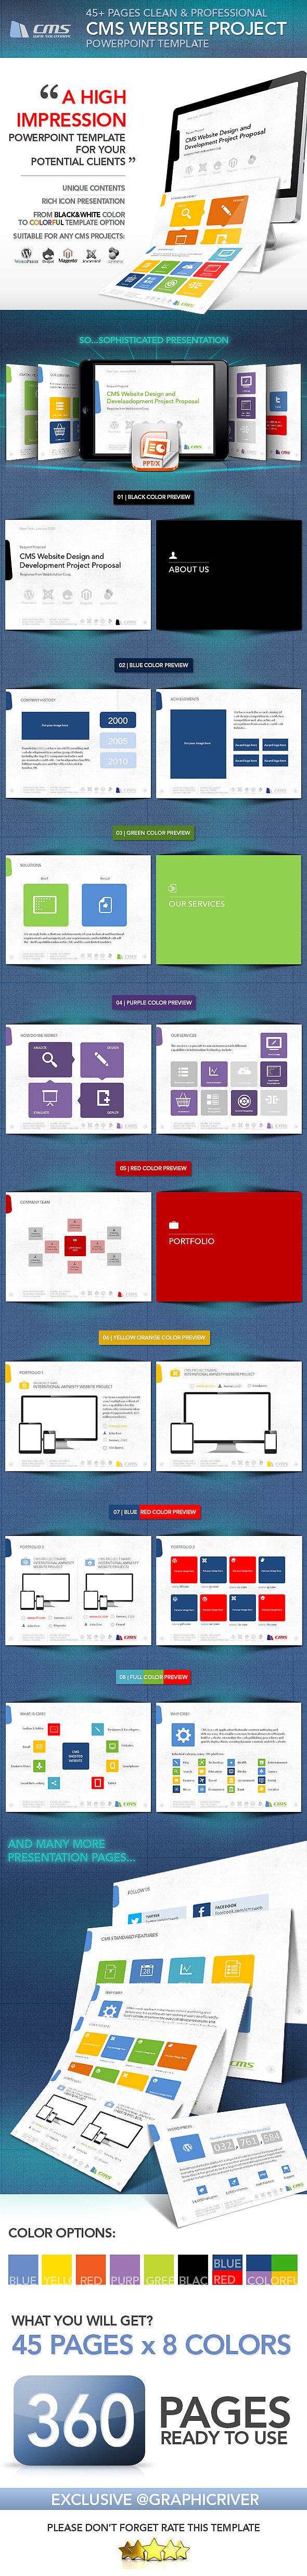 PRO CMS Website Presentation - PowerPoint Templates Presentation Templates